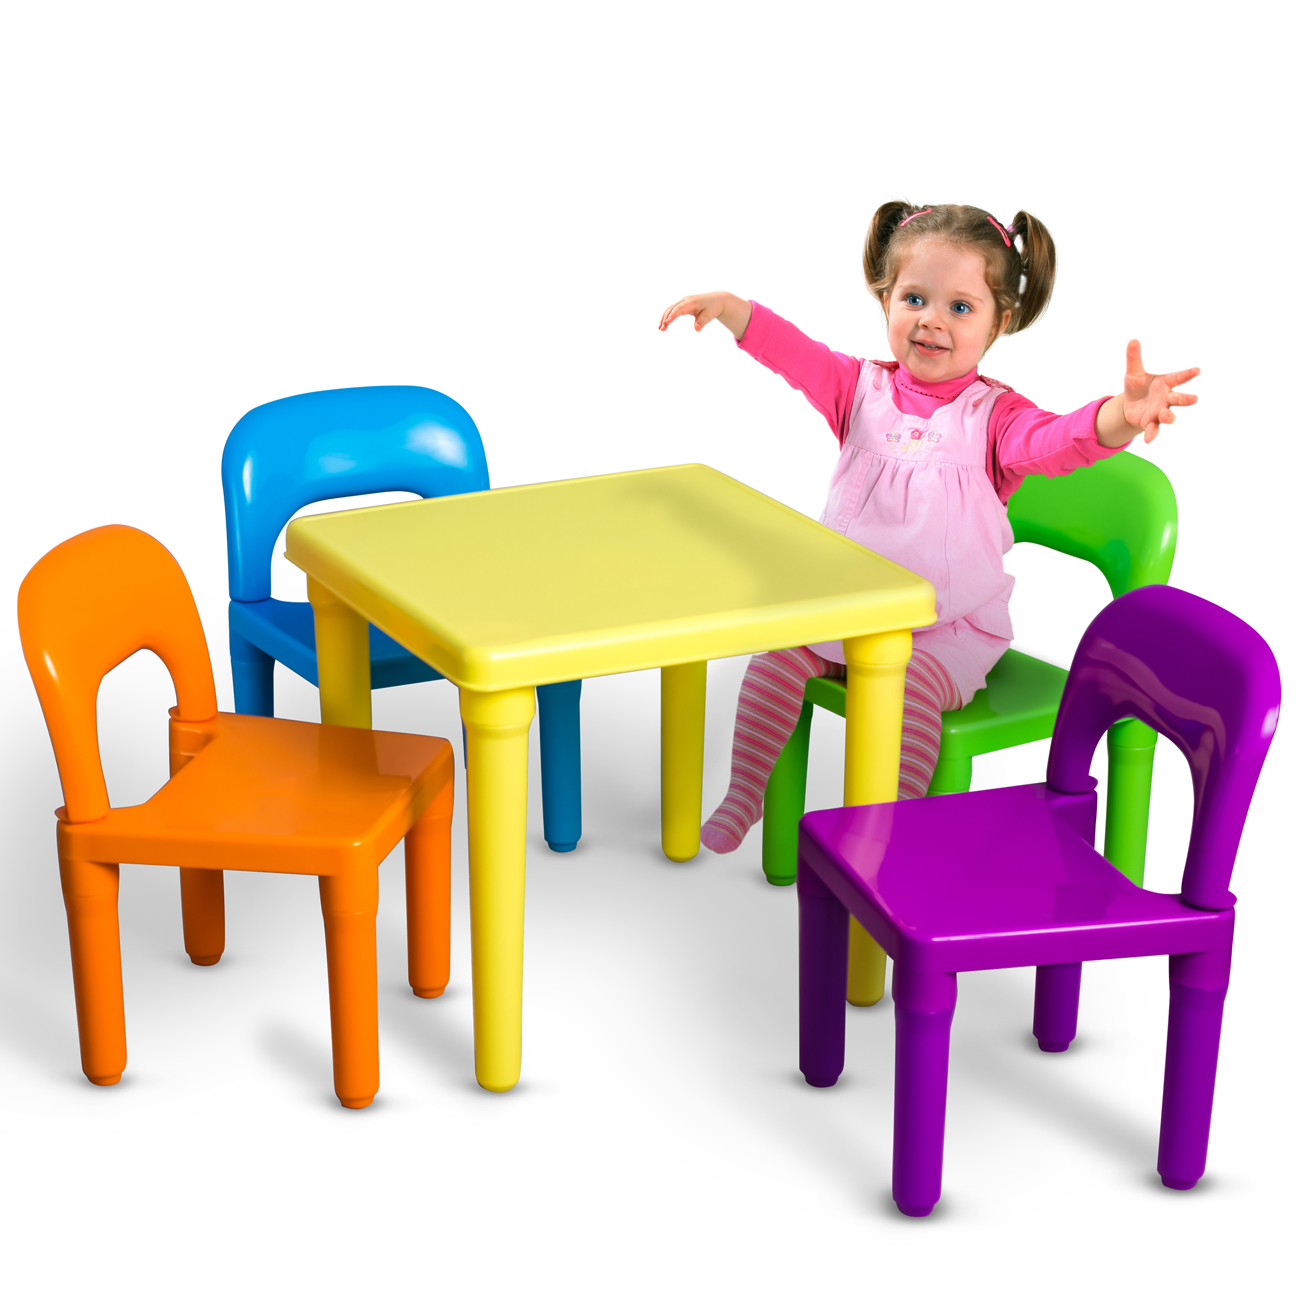 OxGord Kids Table And Chairs Play Set For Toddler Child Toy Activity Furniture Indoor Or Outdoor  sc 1 st  Walmart.com & OxGord Kids Table And Chairs Play Set For Toddler Child Toy Activity ...